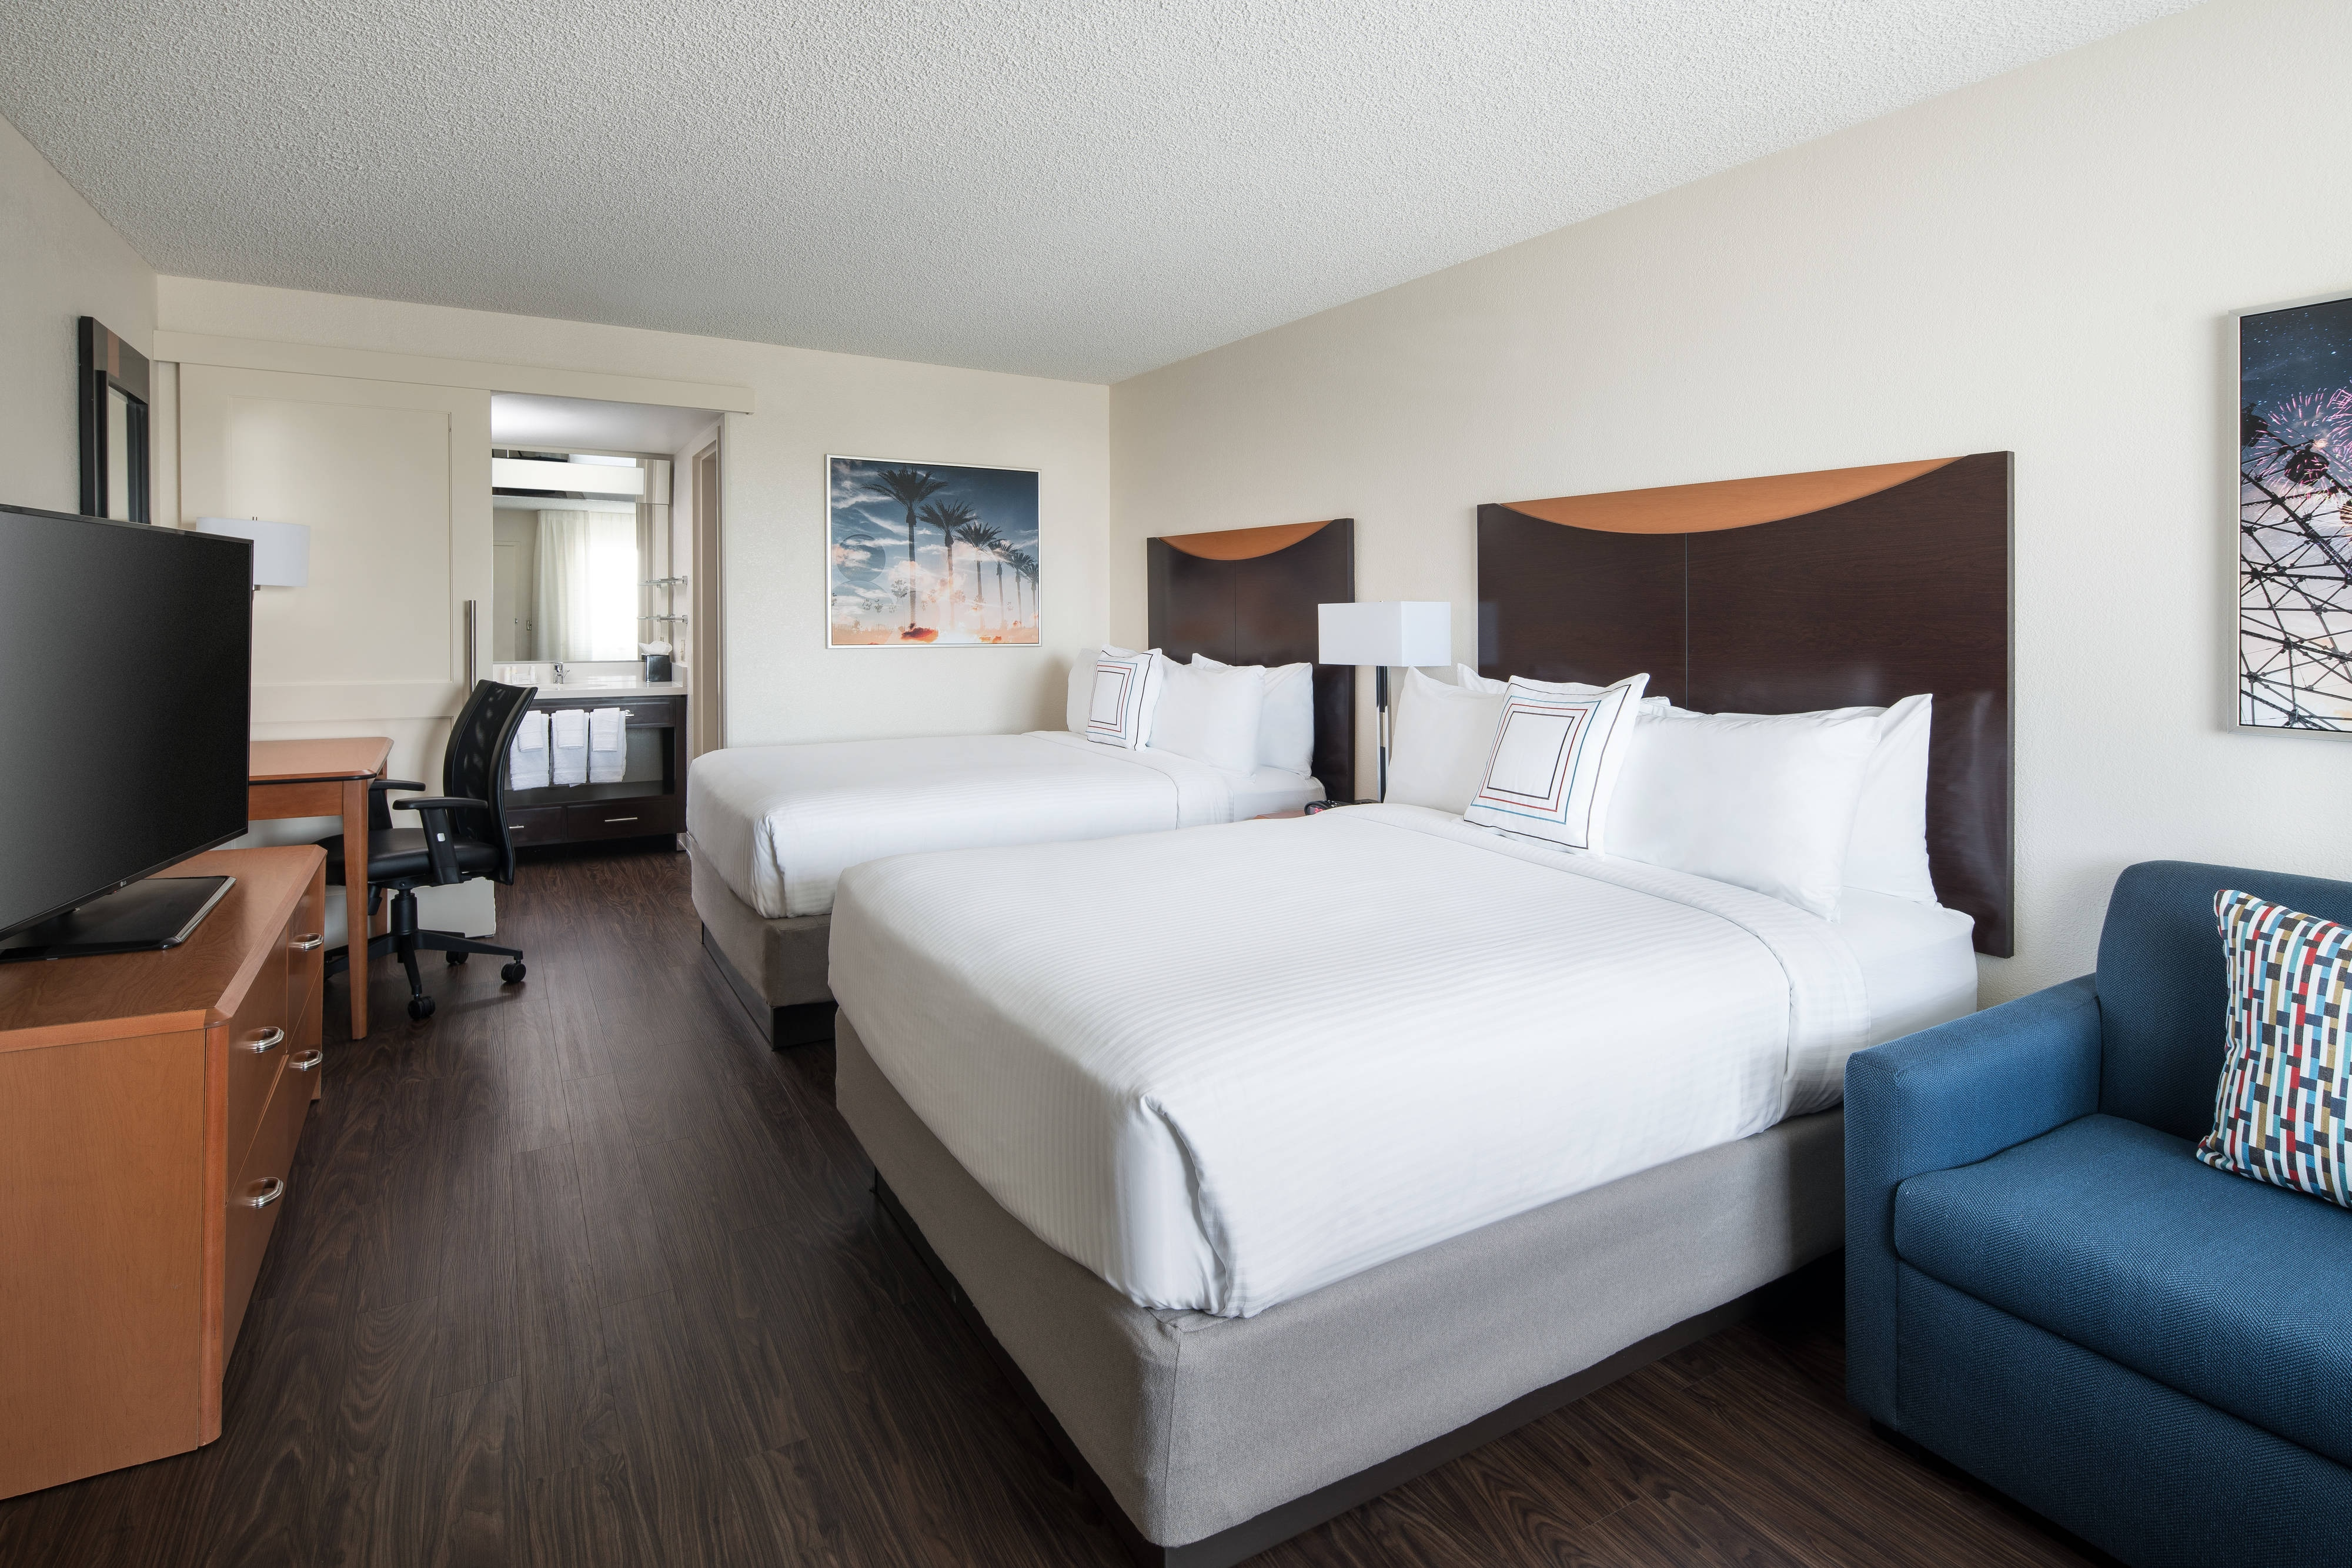 Hotel Rooms Near Disneyland Anaheim Fairfield Inn